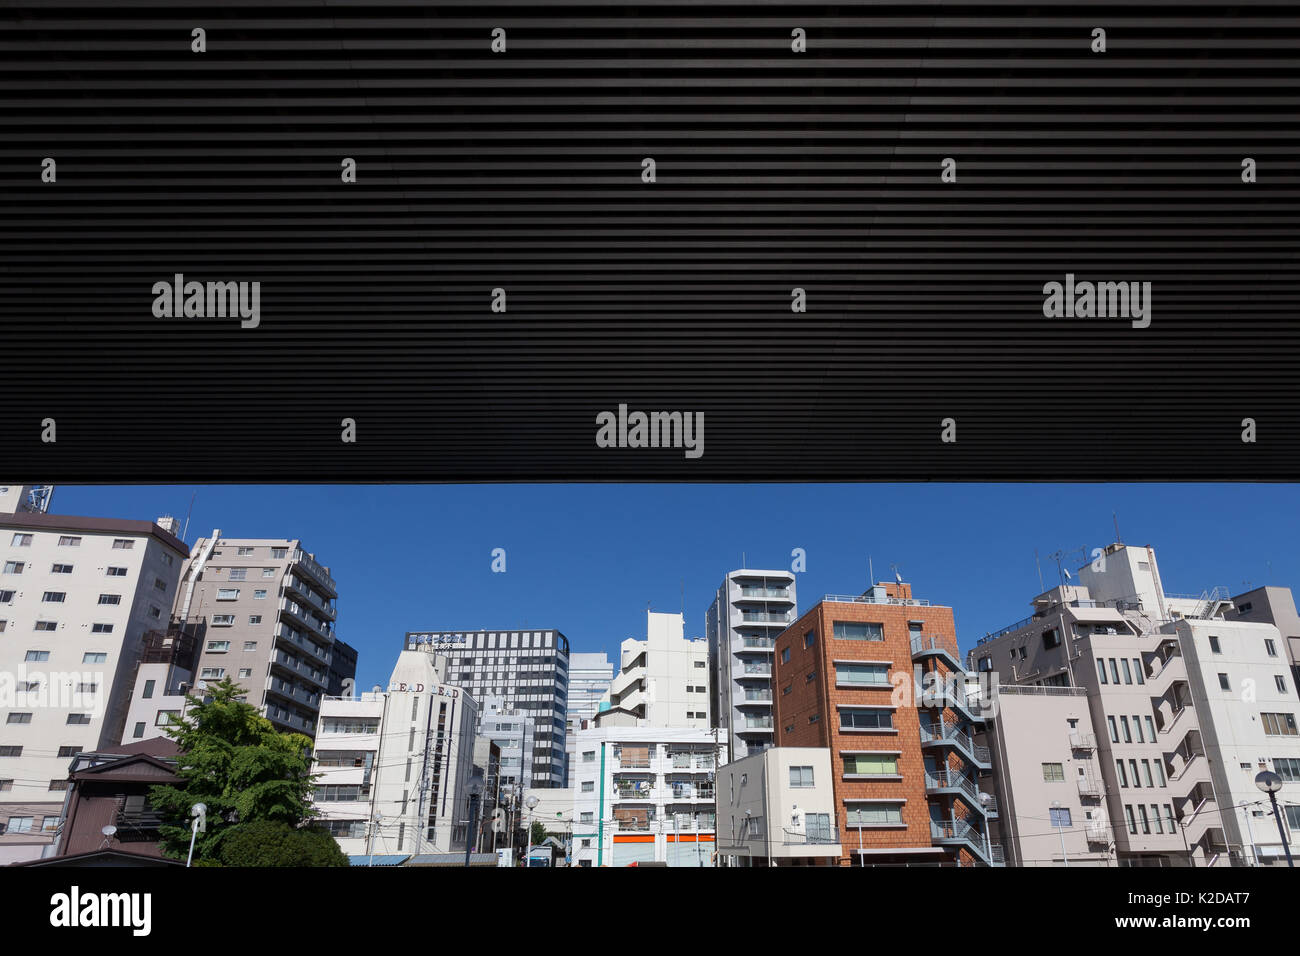 An overpass on the Shuto Expressway closes pout the sky above a view of apartment buildings near Asakusa ,Tokyo, Japan. Friday July 14th 2017 - Stock Image